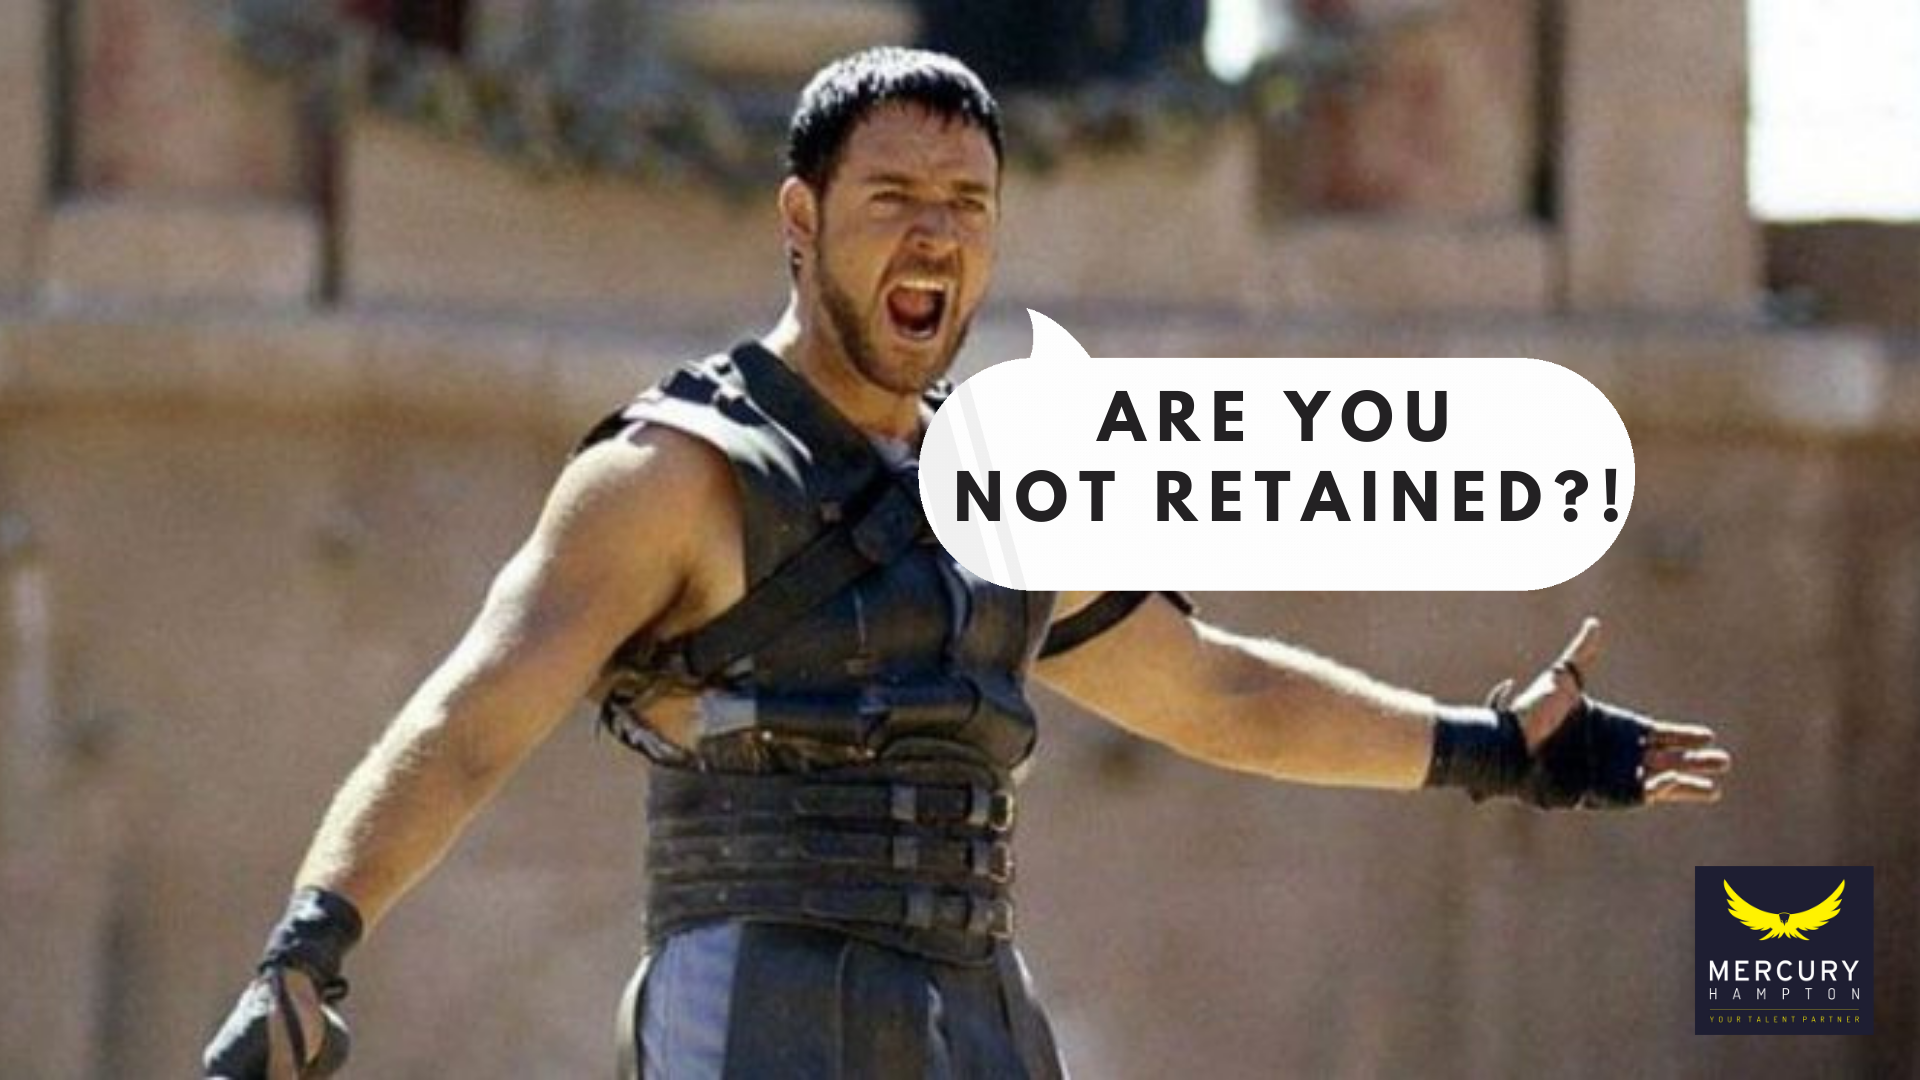 11 REASONS WHY RETAINED RECRUITMENT IS A WIN-WIN FOR ALL